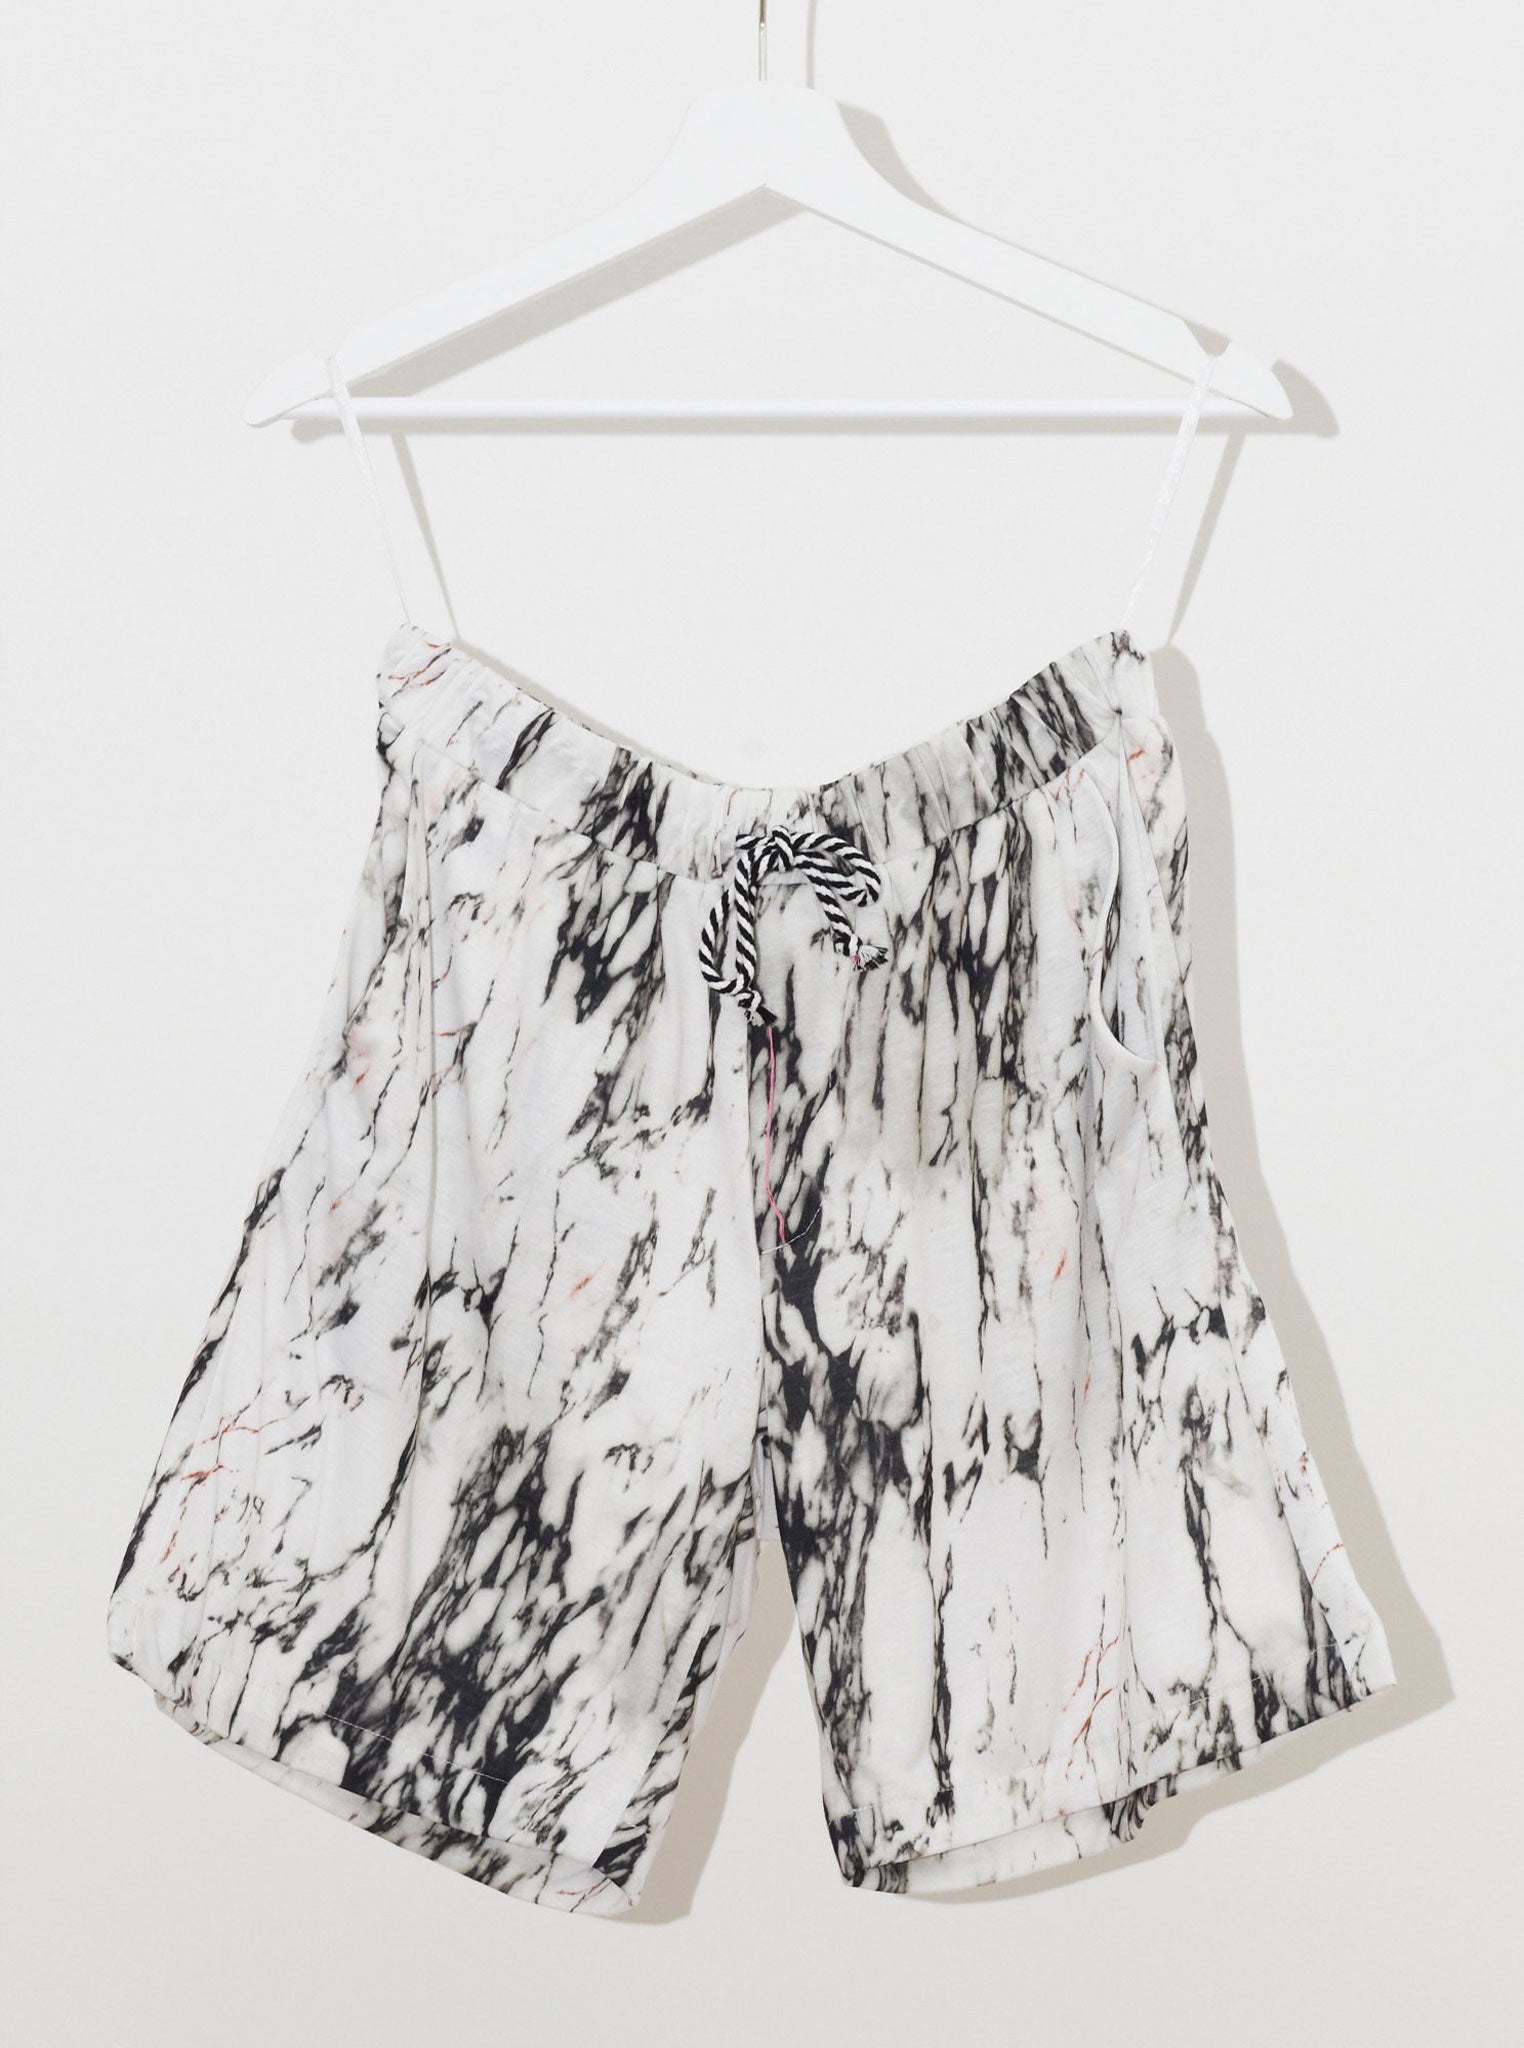 Vinti Andrews Marble Printed Shorts